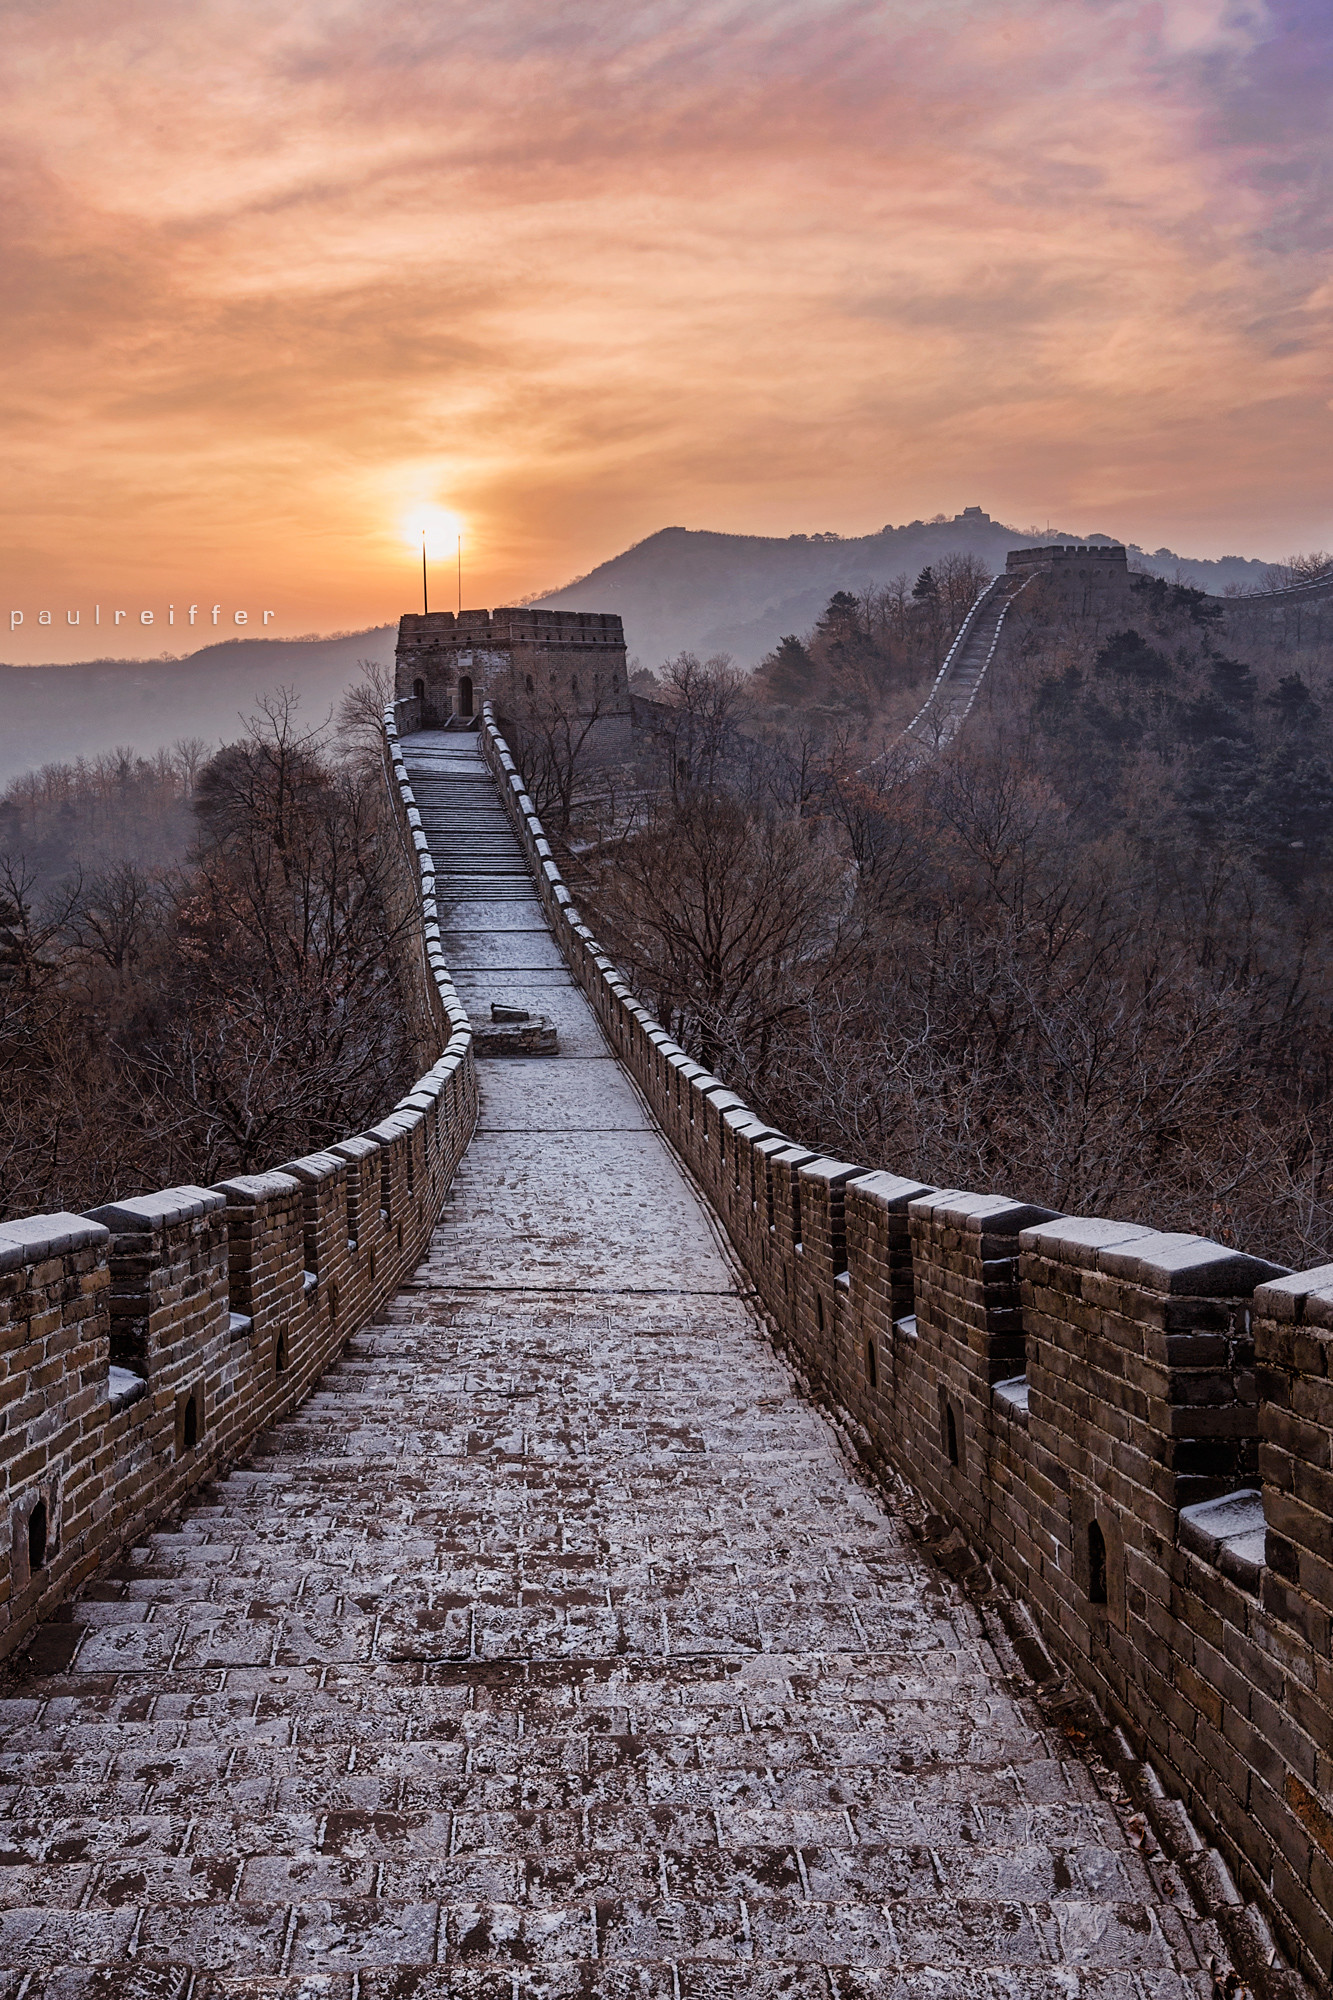 The Great Wall of China Wallpaper 51 images 1333x2000